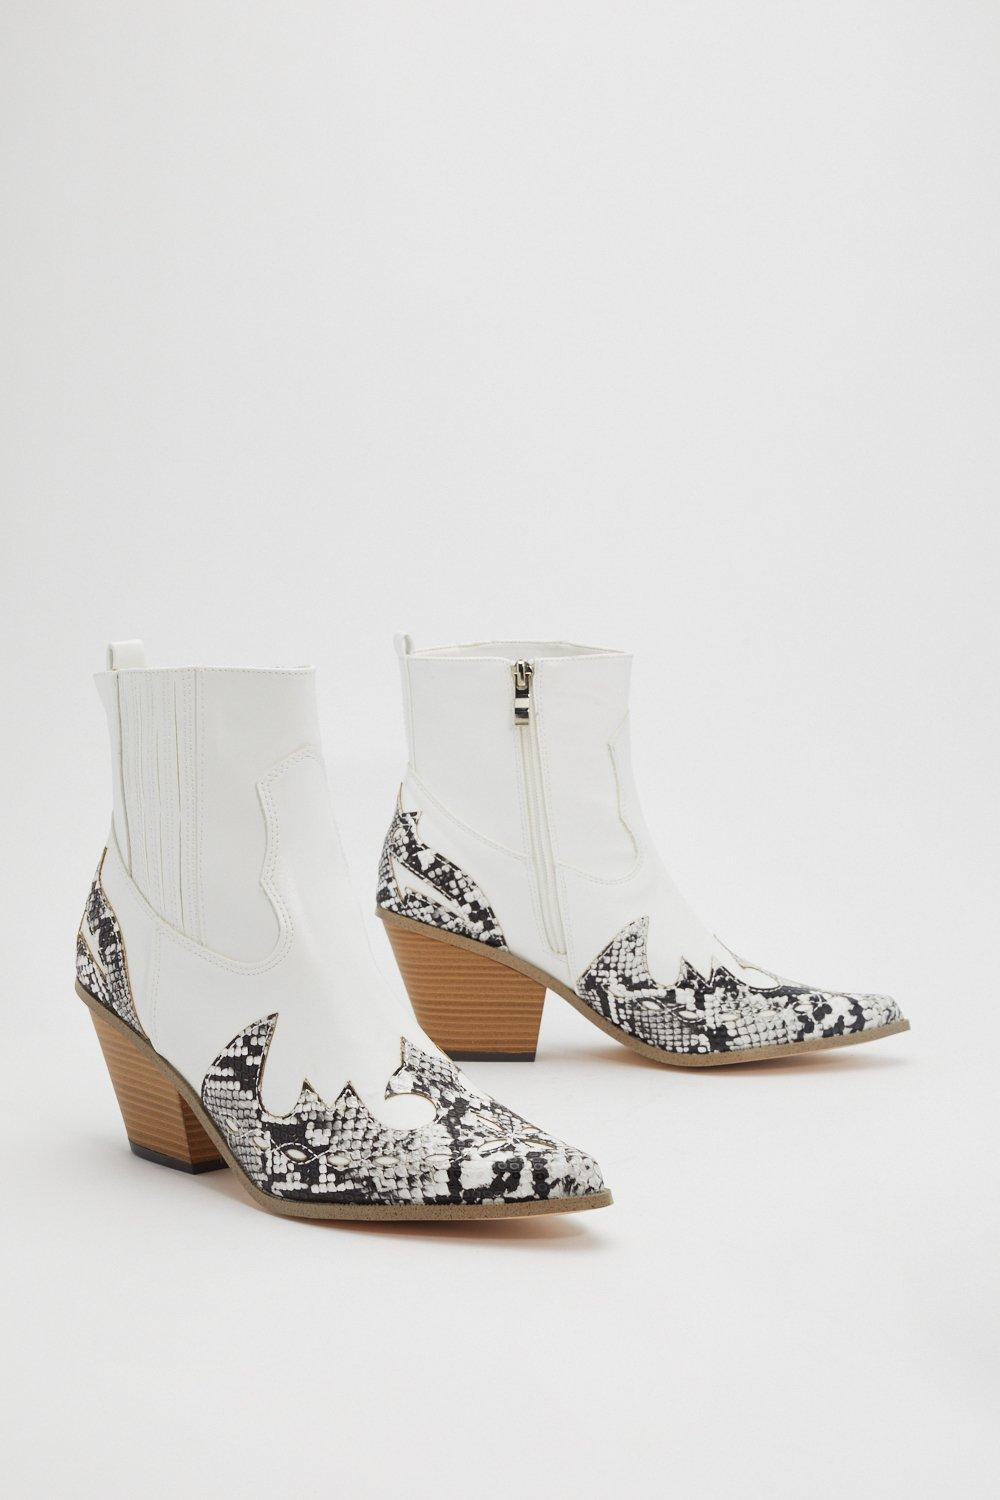 5c3dc98ac06 Snake in the Desert Cowboy Boots   Shop Clothes at Nasty Gal!